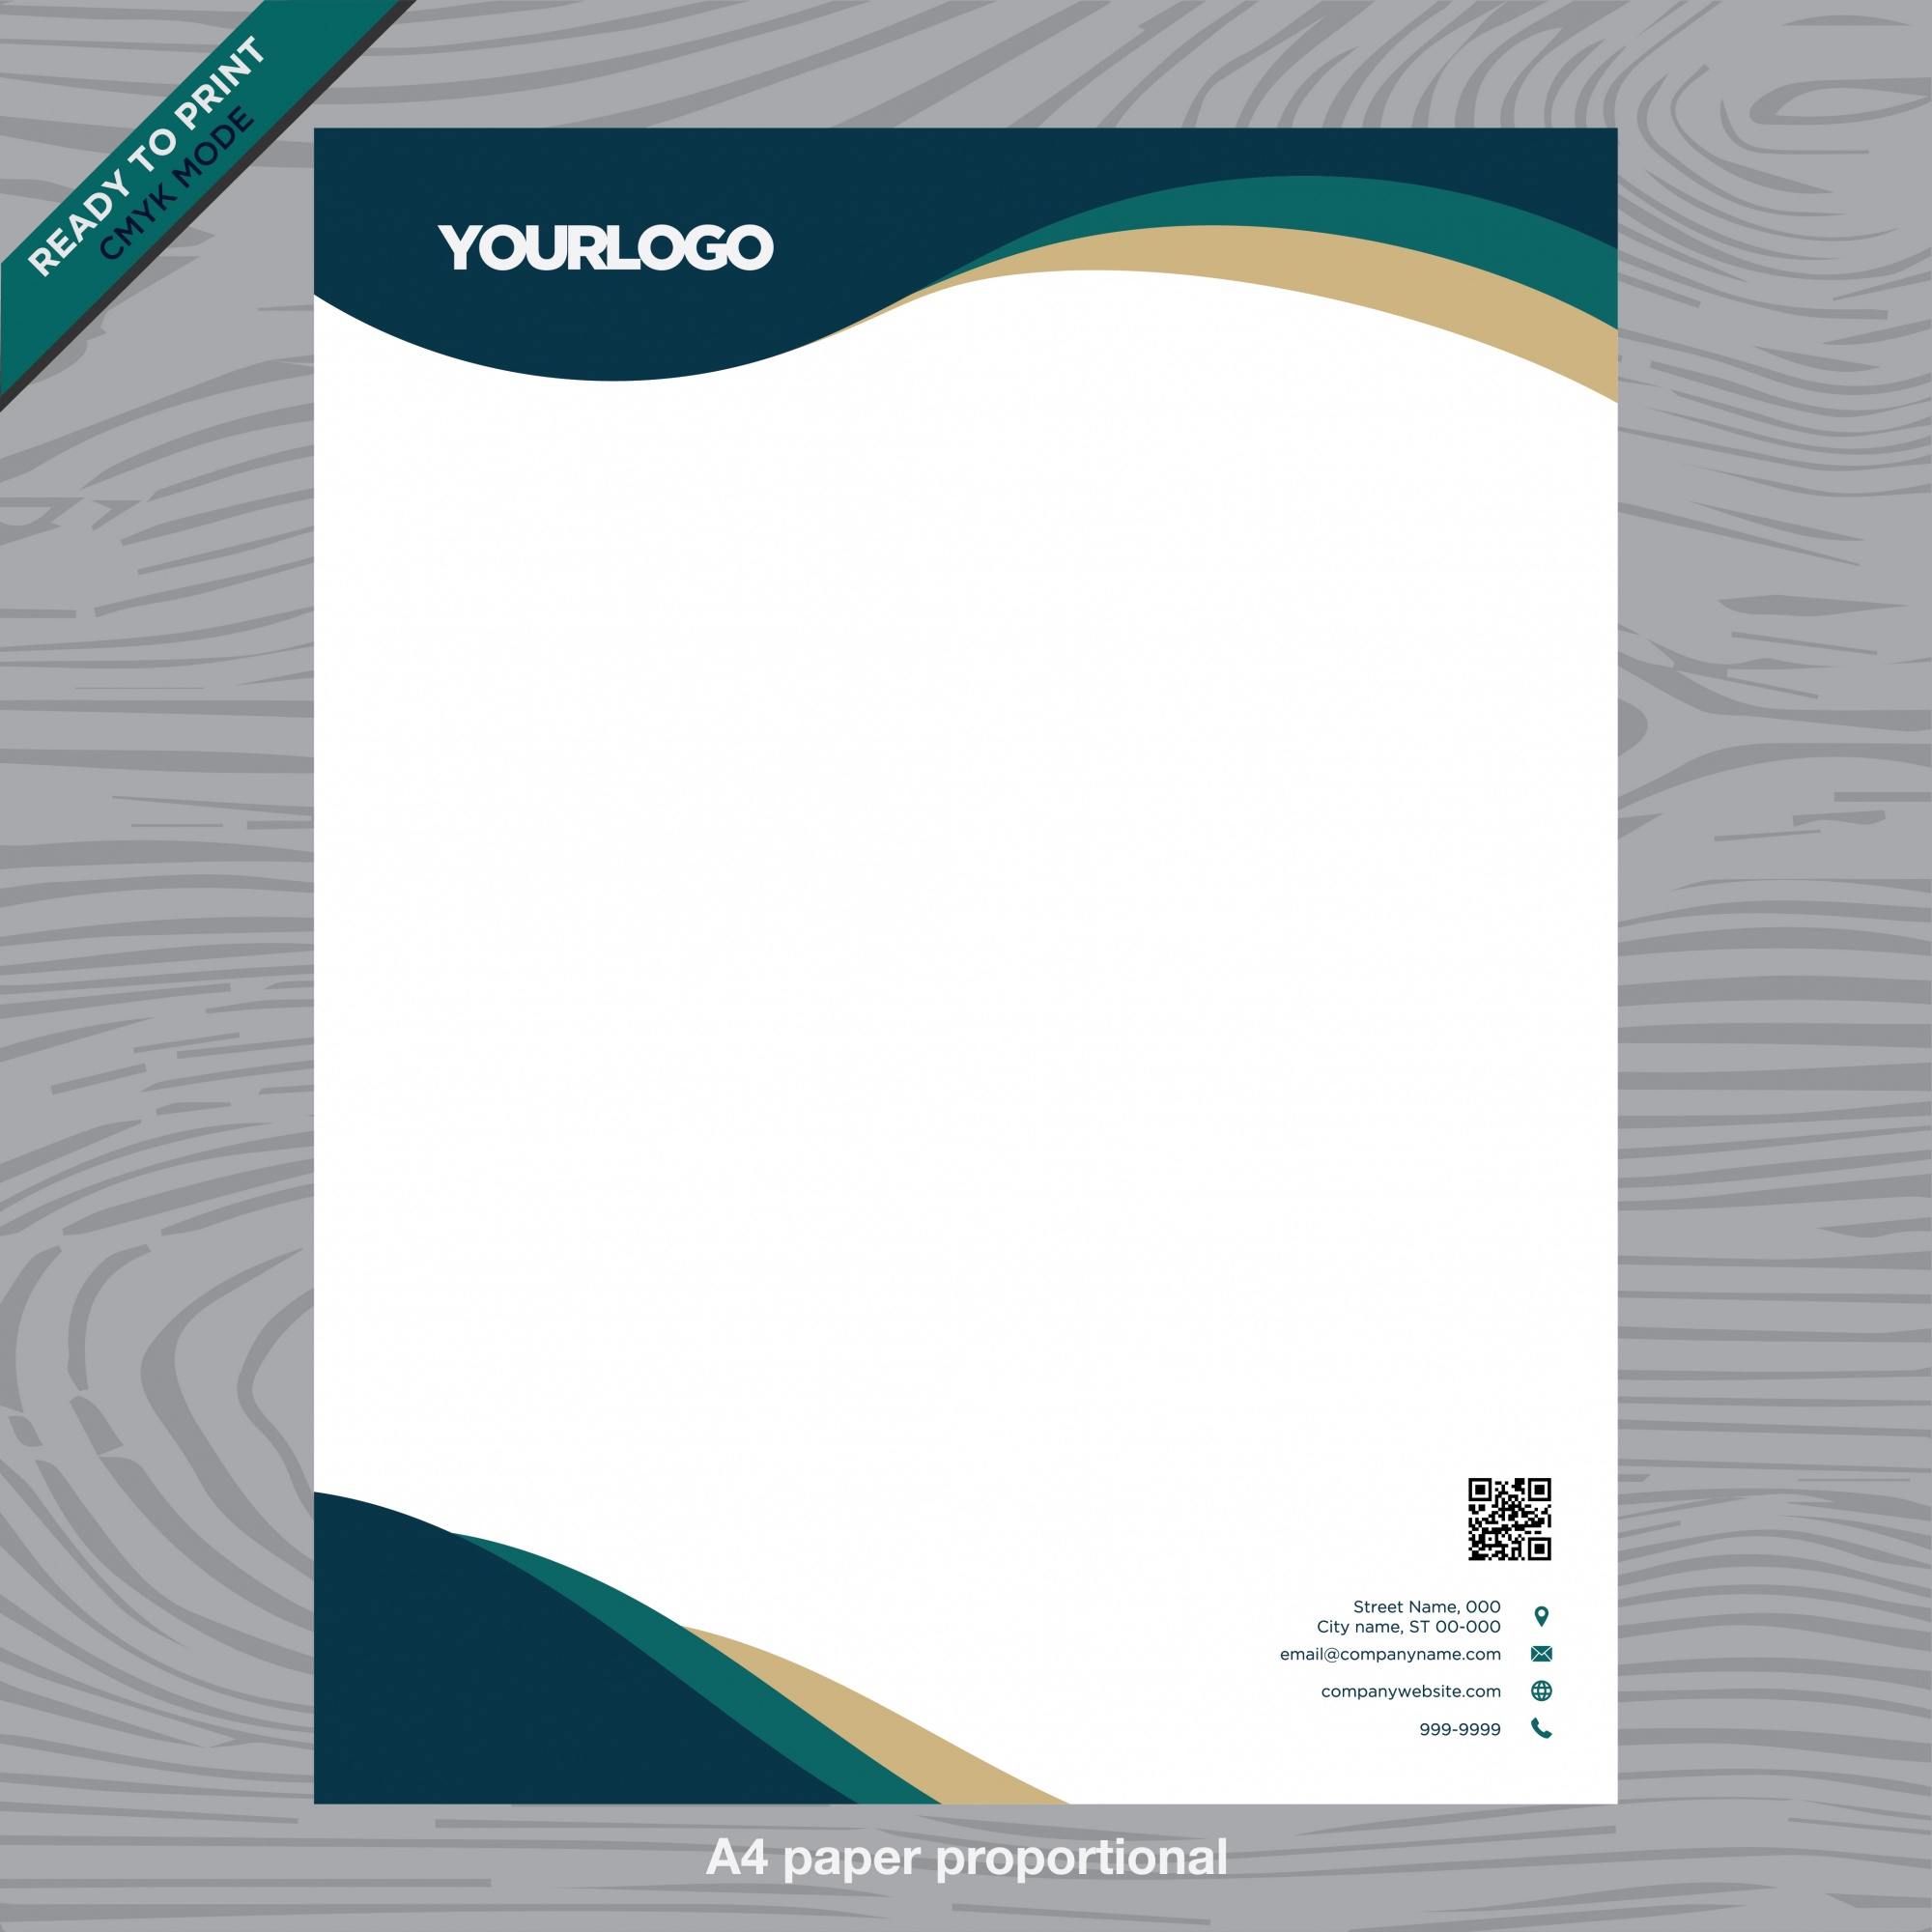 Business white paper with logo